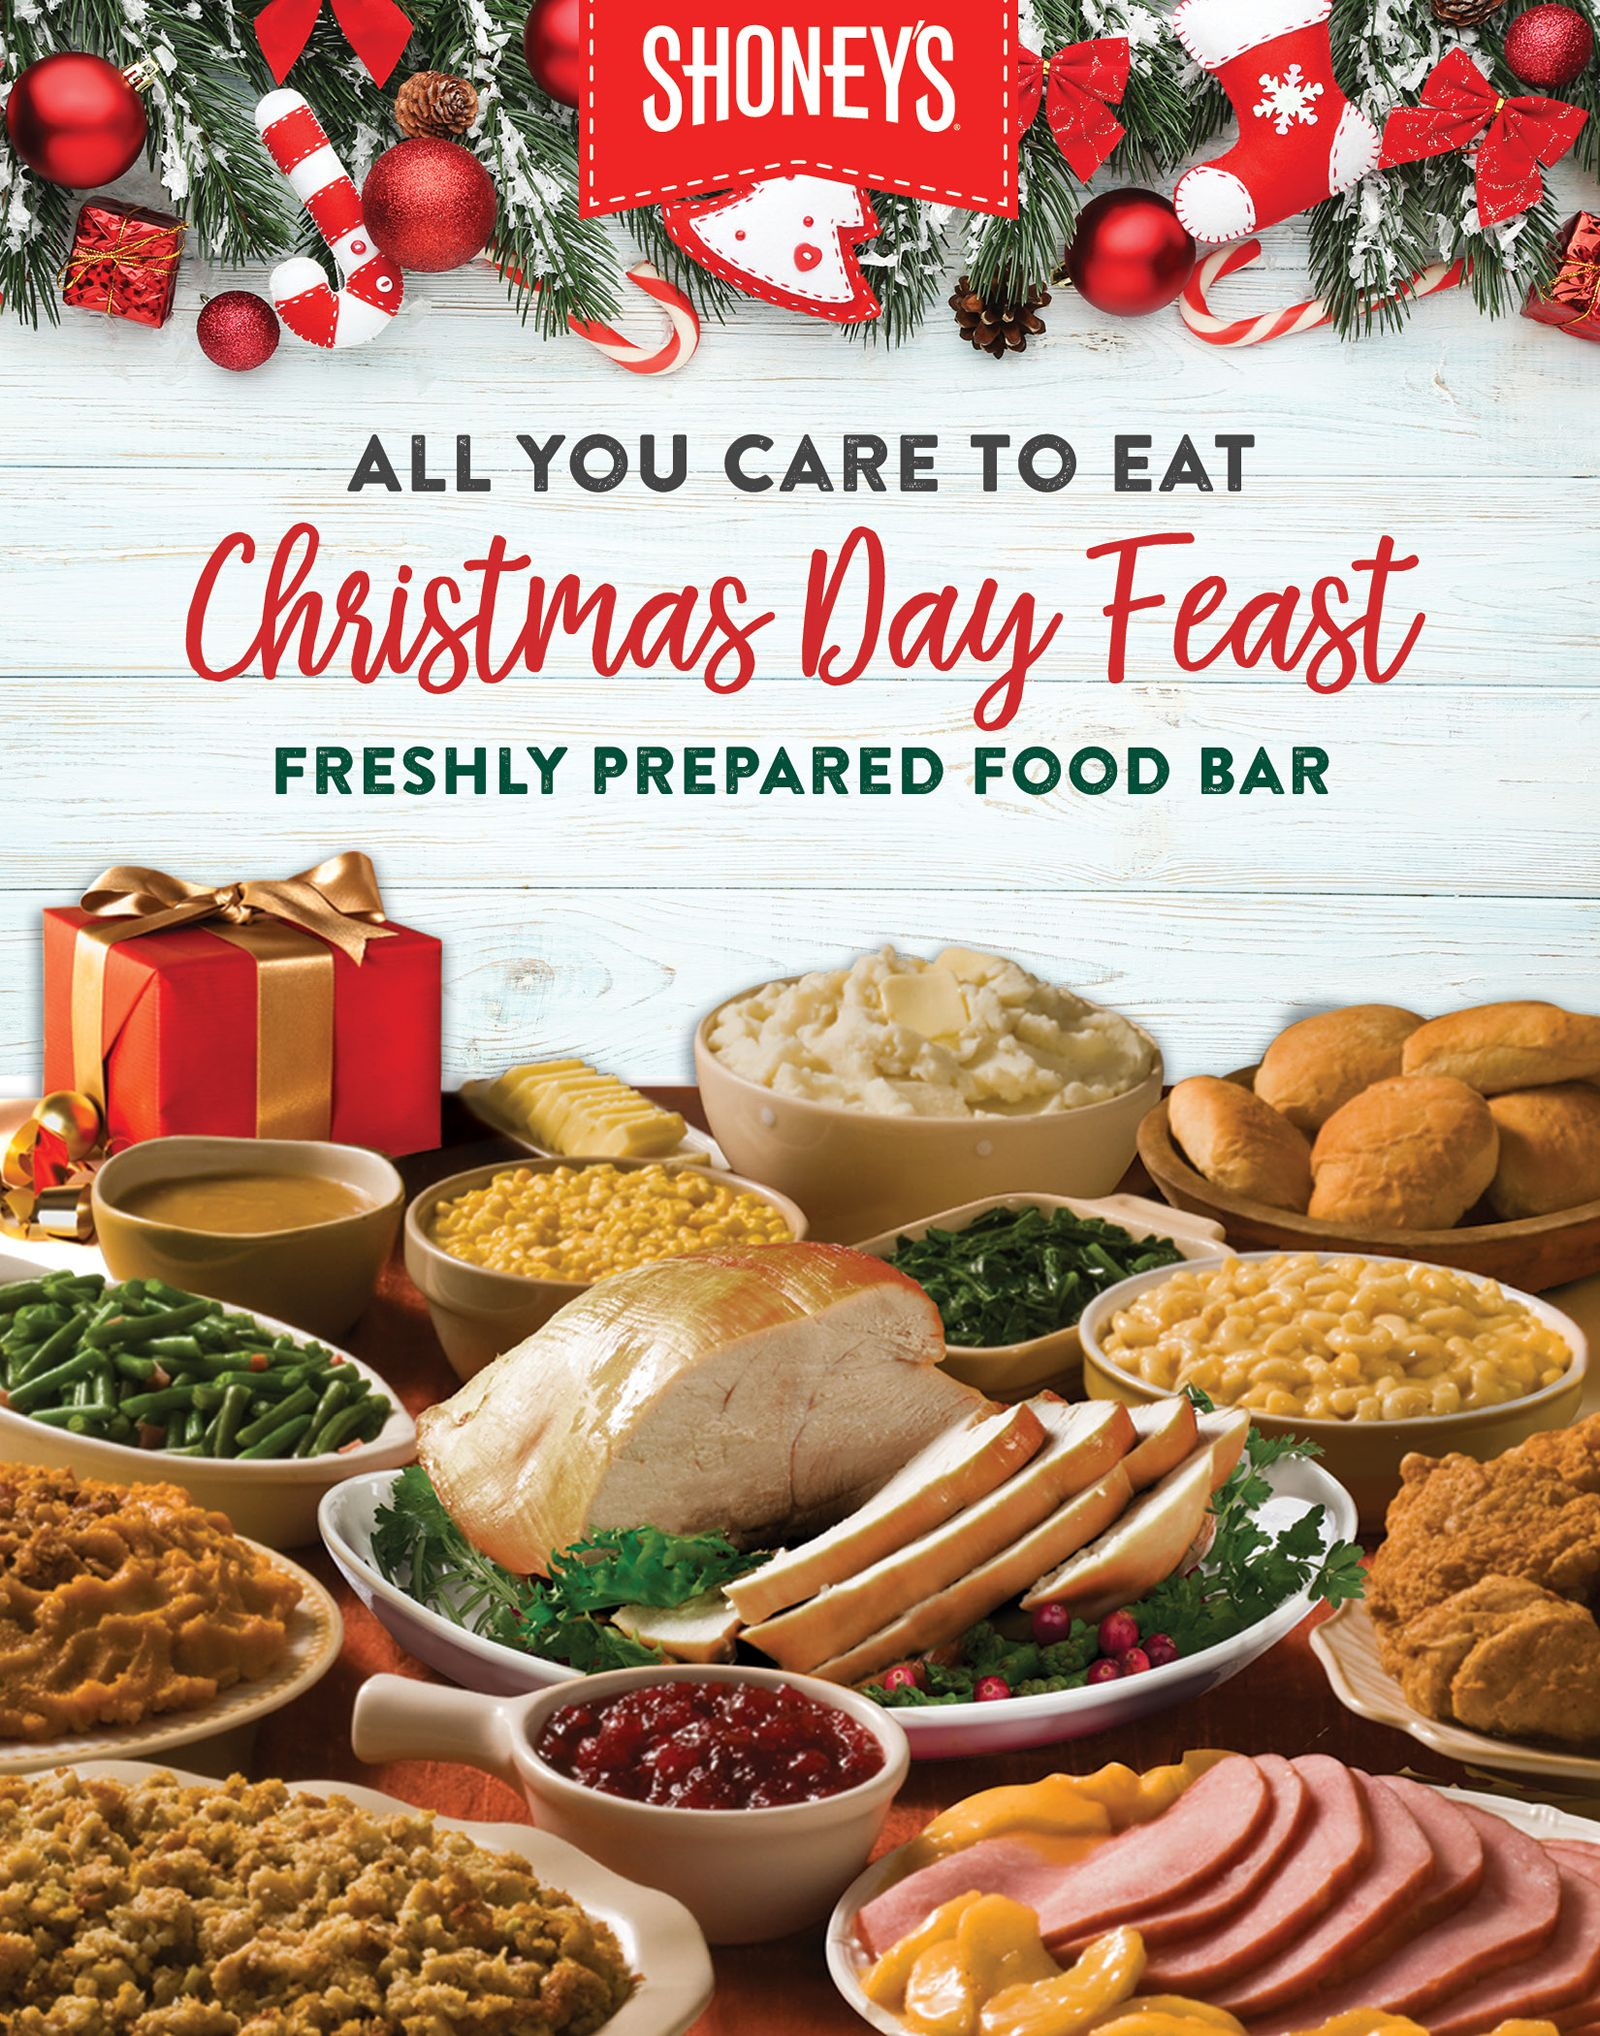 Open for a Christmas Day Feast